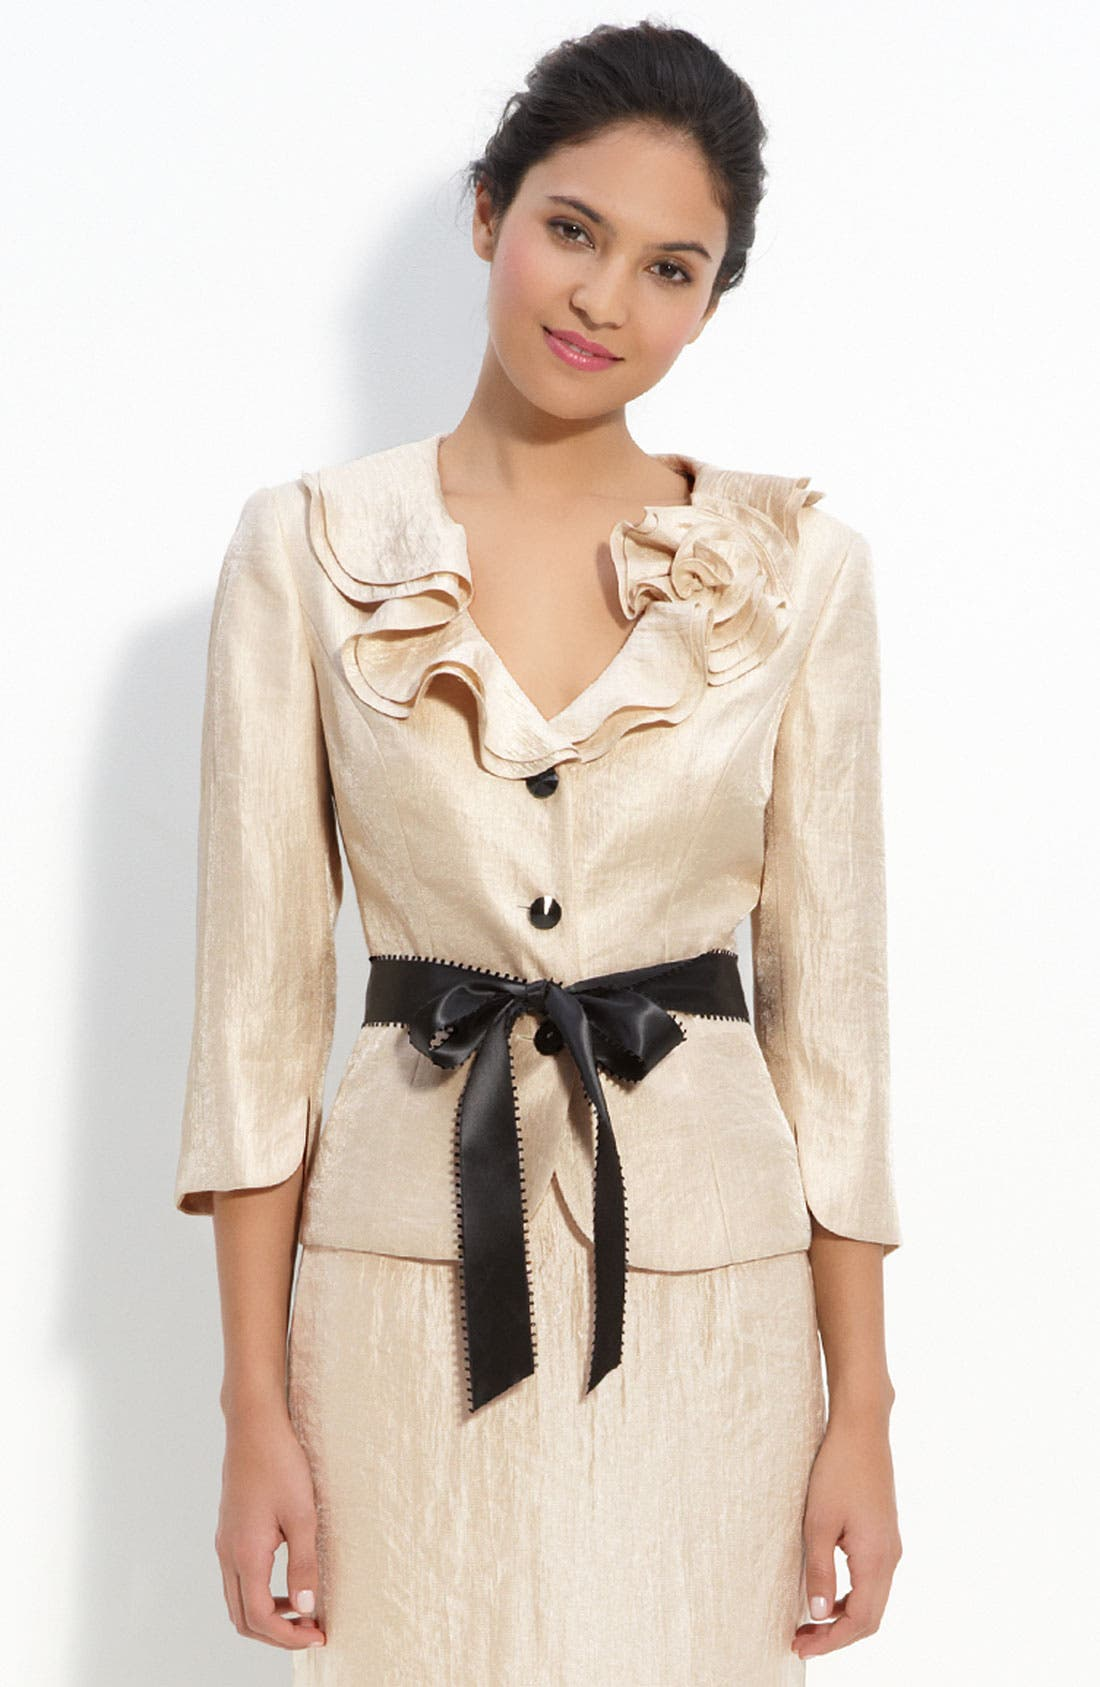 Alternate Image 1 Selected - Adrianna Papell Shimmer Crepe Jacket